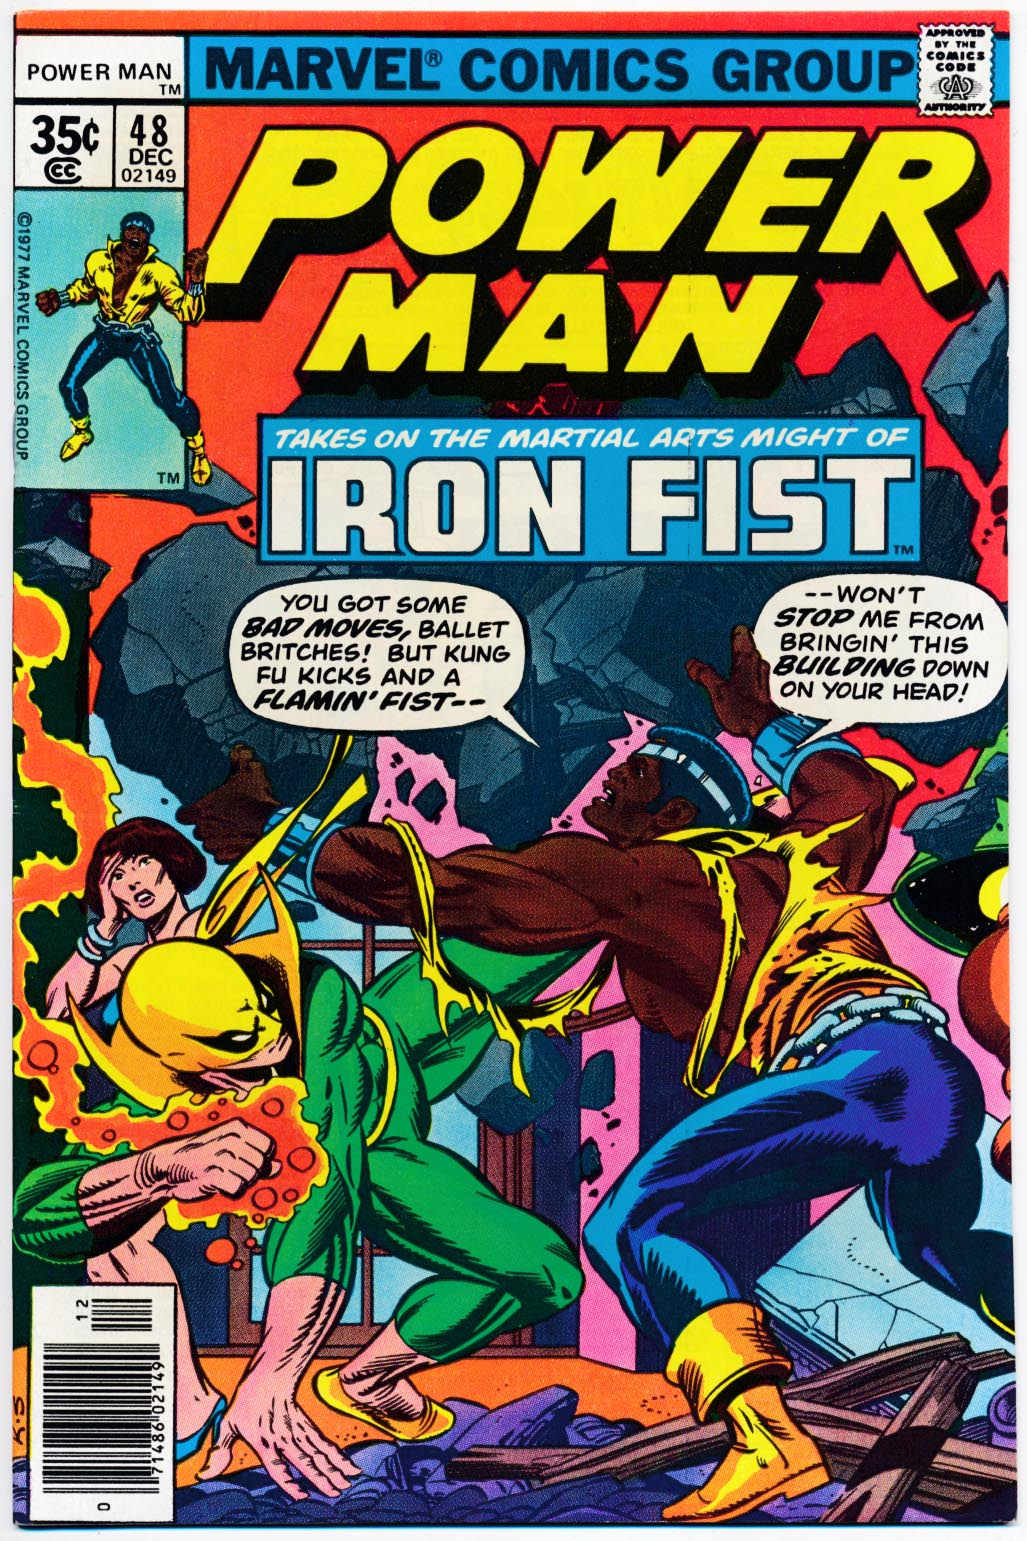 Power Man 48